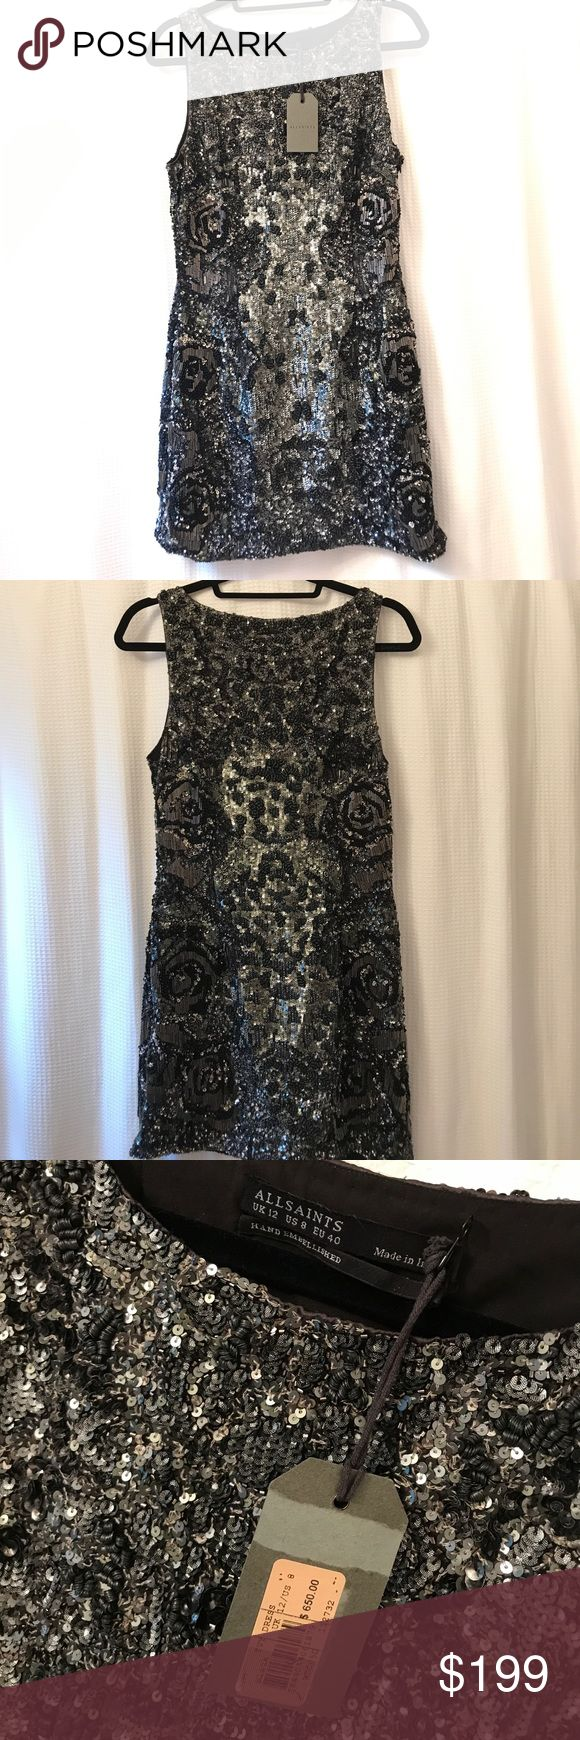 NWT  Allsaints IVY dress sequins & beads SALE Spectacular sparkly dress made from a technical fabric for increased structure. Features a floral motif through the sides blending into a leopard print at the front, gunmetal sequins and graphite beads are added for increased depth. Fully lined. US8=UK 12. Brand-new with tags, packet of extra beads and sequins included. Retail $650. All Saints Dresses